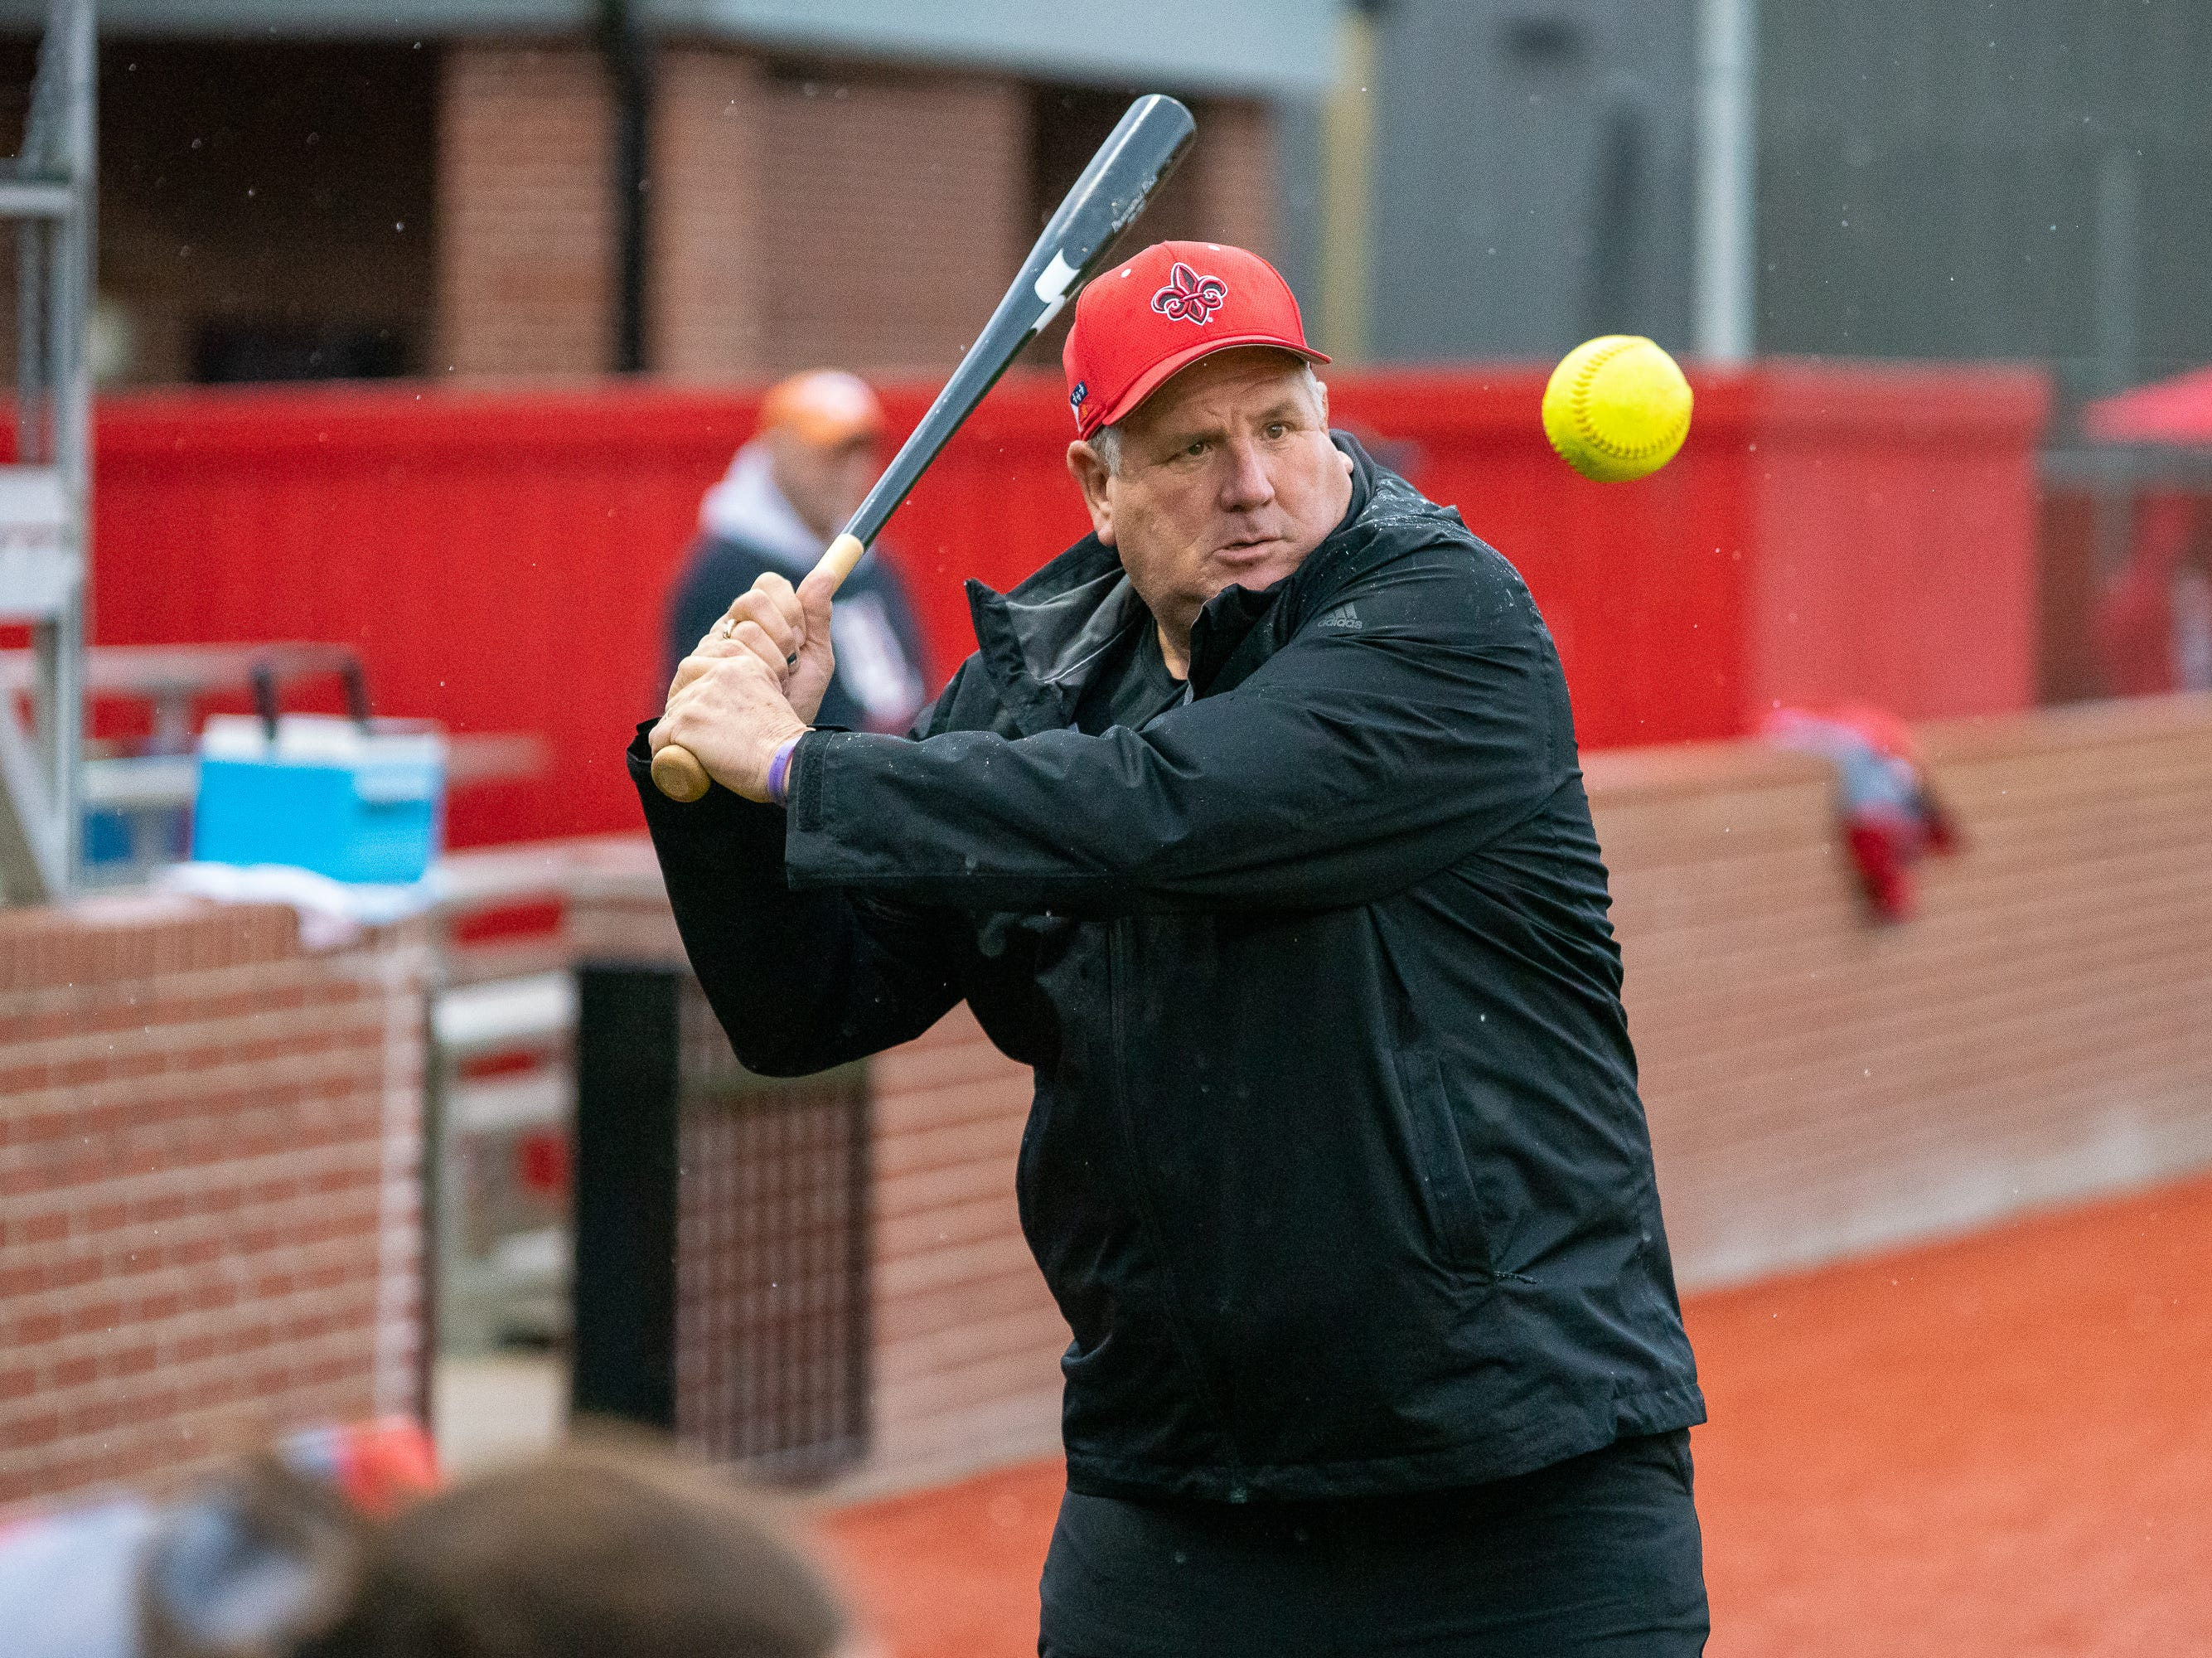 UL's head softball coach Gerry Glasco hits balls to his players before the game as the Ragin' Cajuns take on the Troy Trojans at Lamson Park, Yvette Girouard Field on Friday, March 15, 2019.